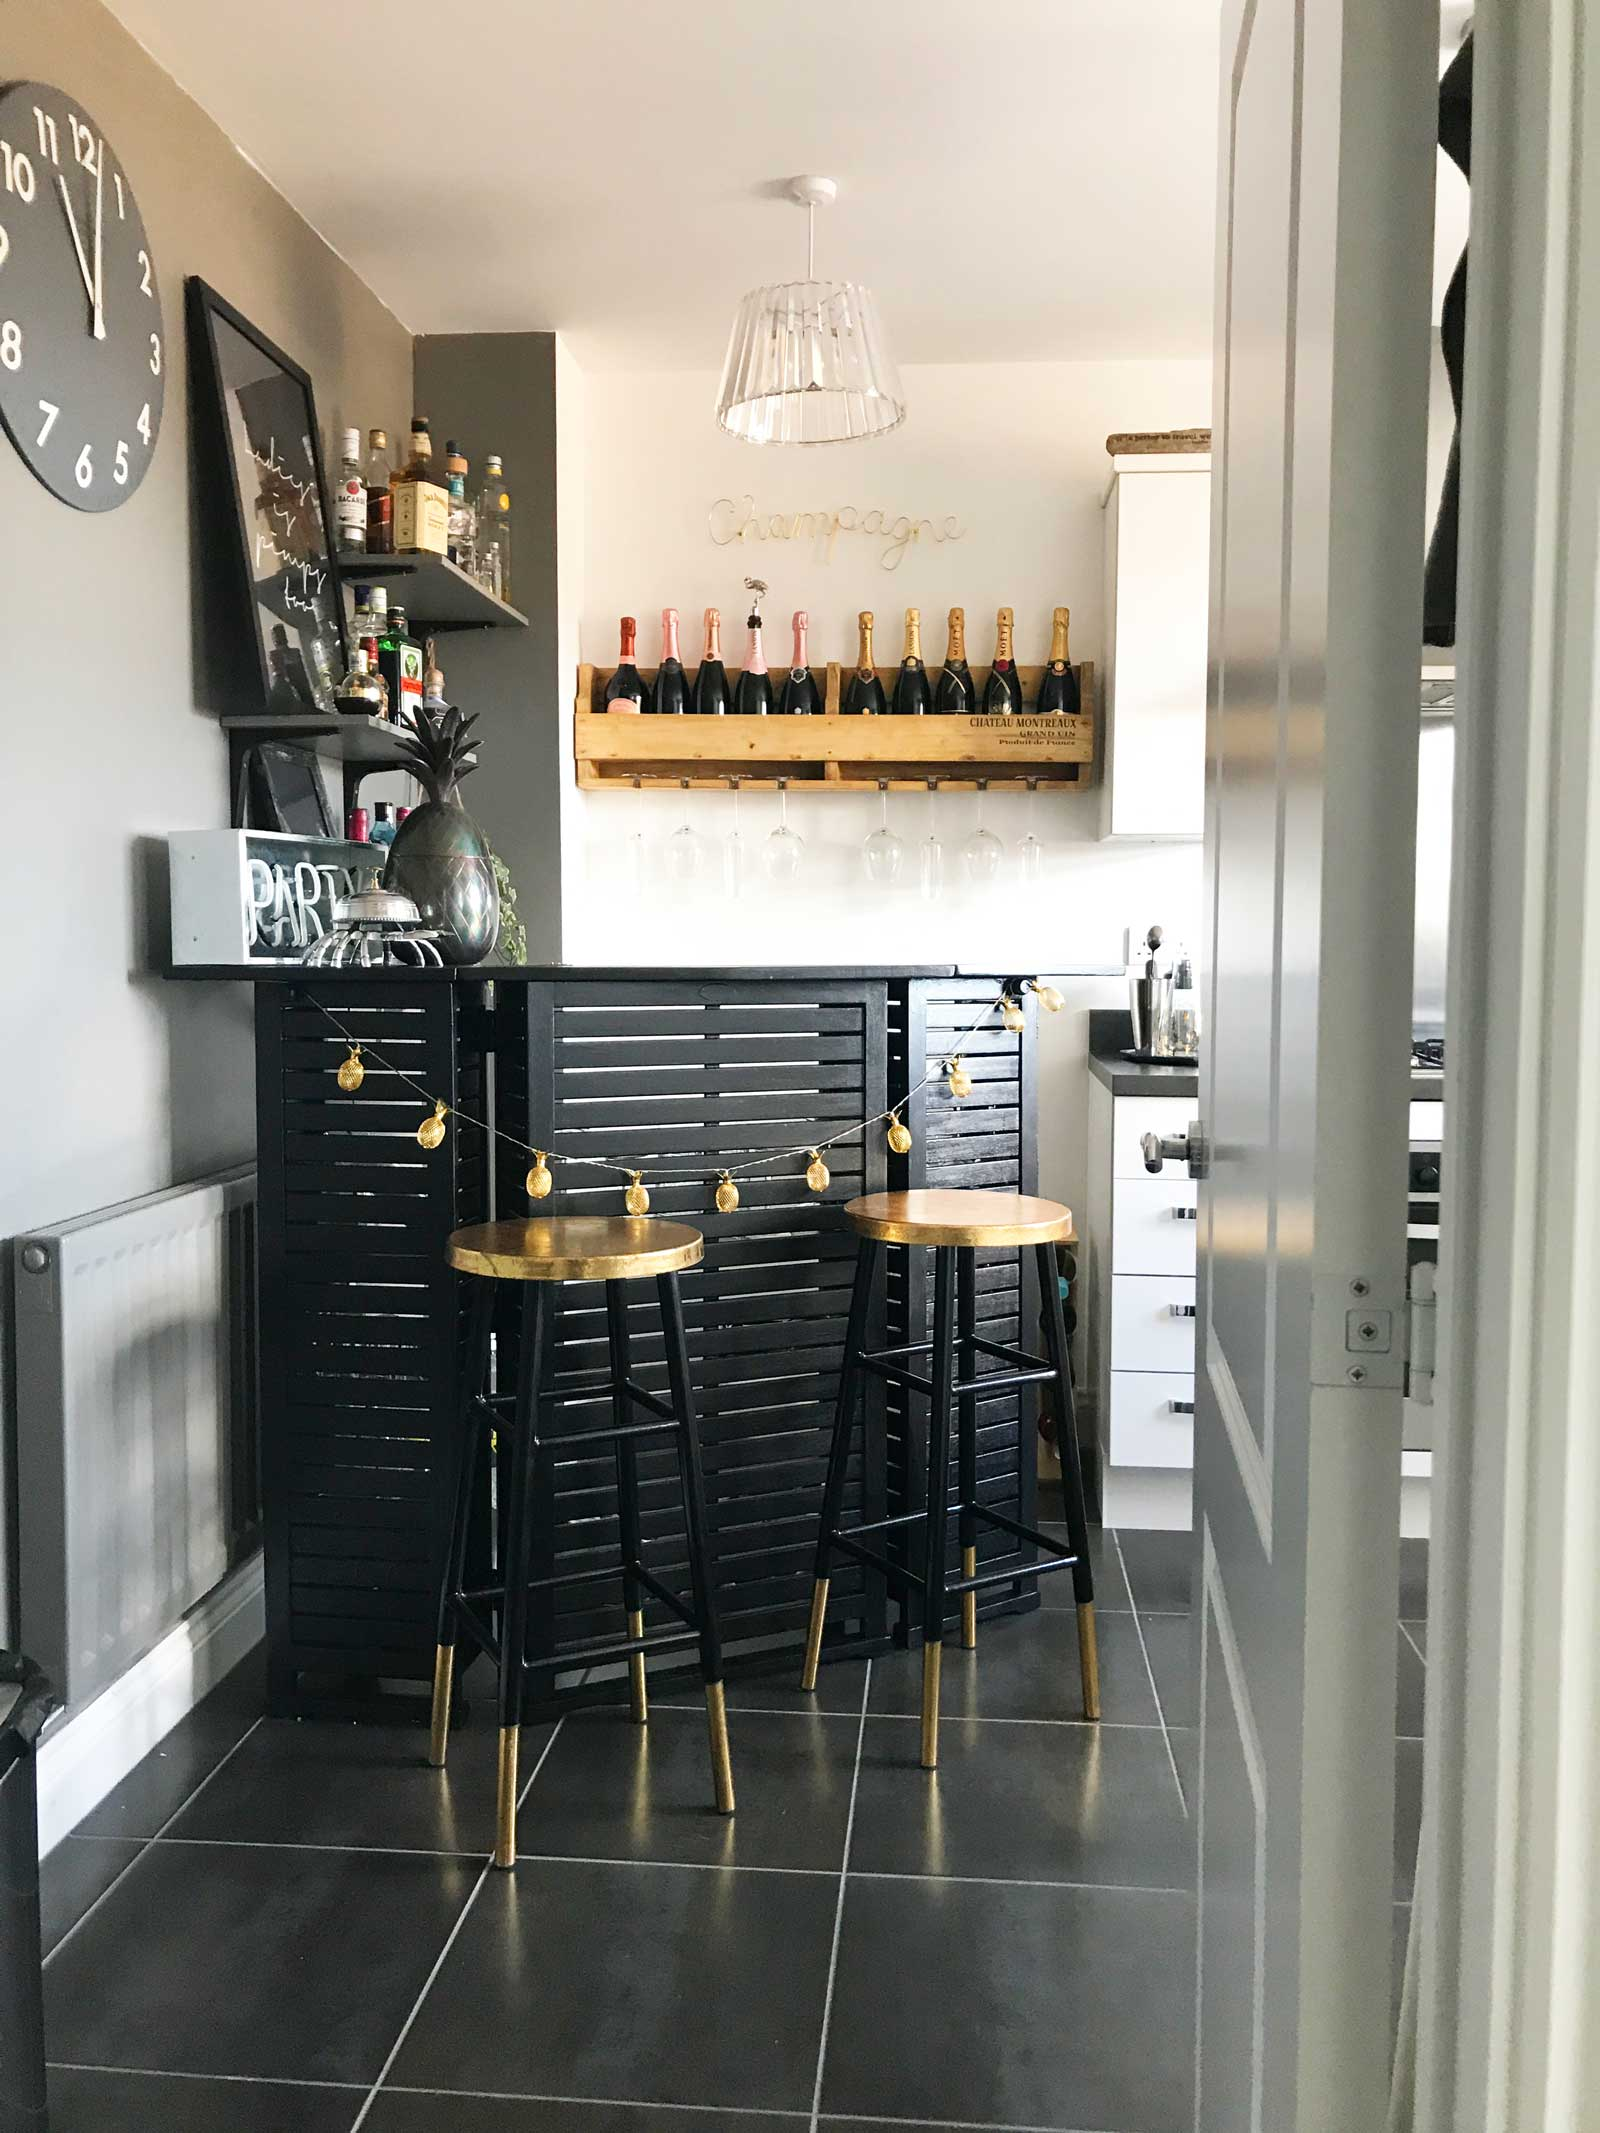 Home bar: check out this new build home in the UK - it's eclectic, glamorous and welcoming @my_home_impression